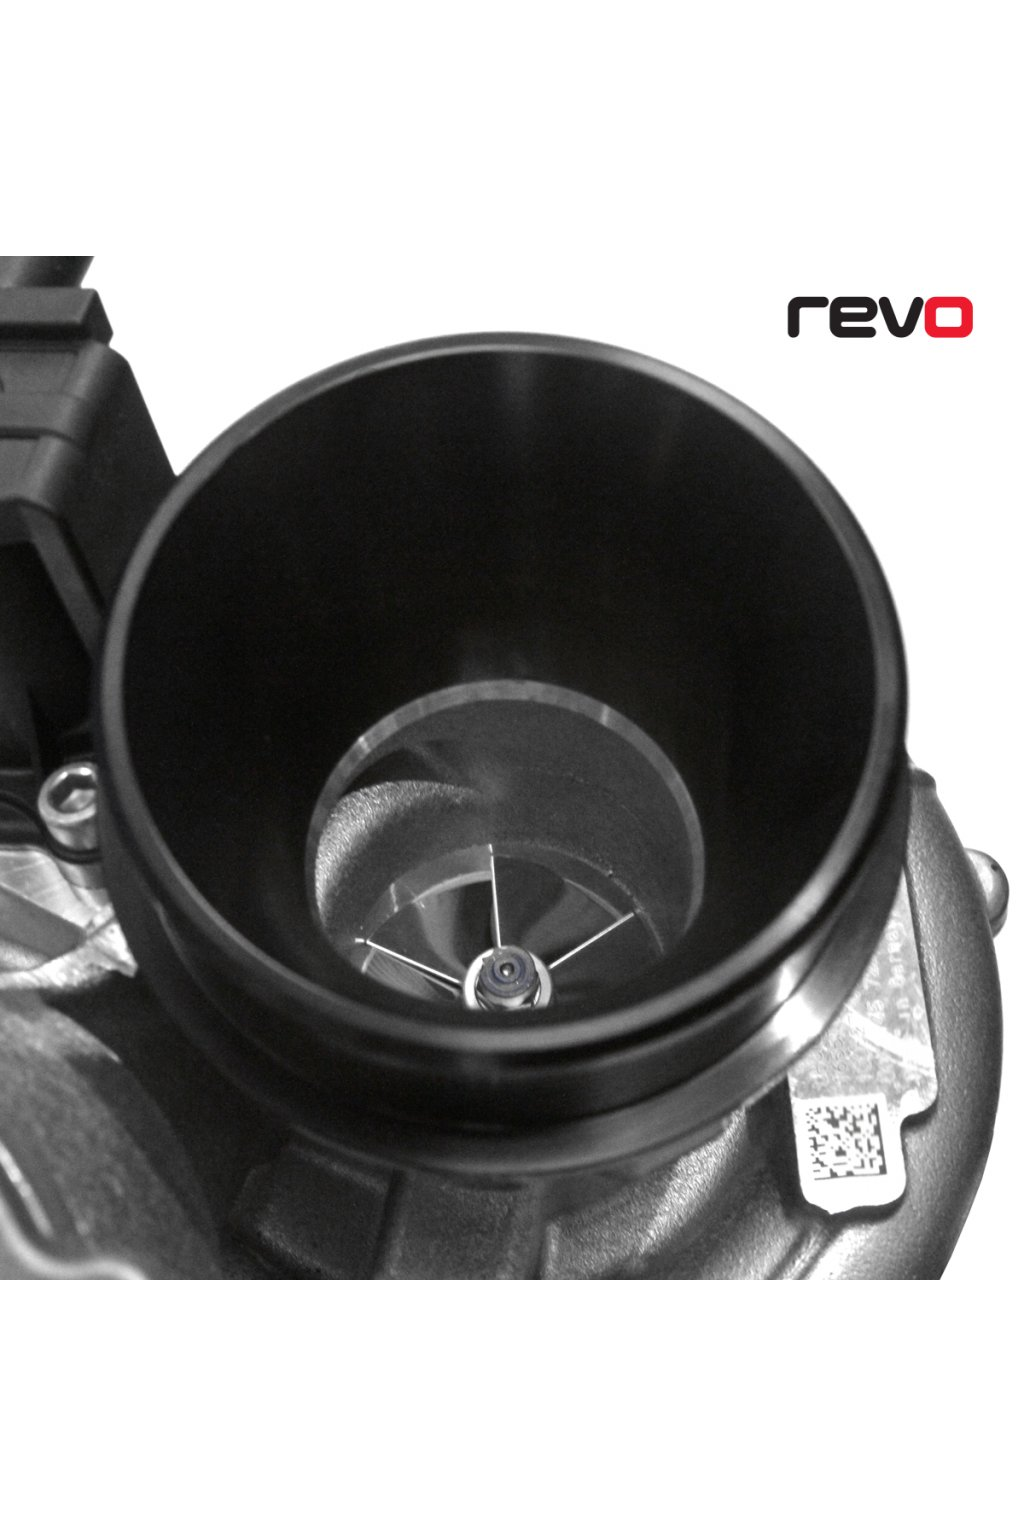 Revo MQB Machined Turbo Inlet (IS38 ETR Hybrid Turbo)